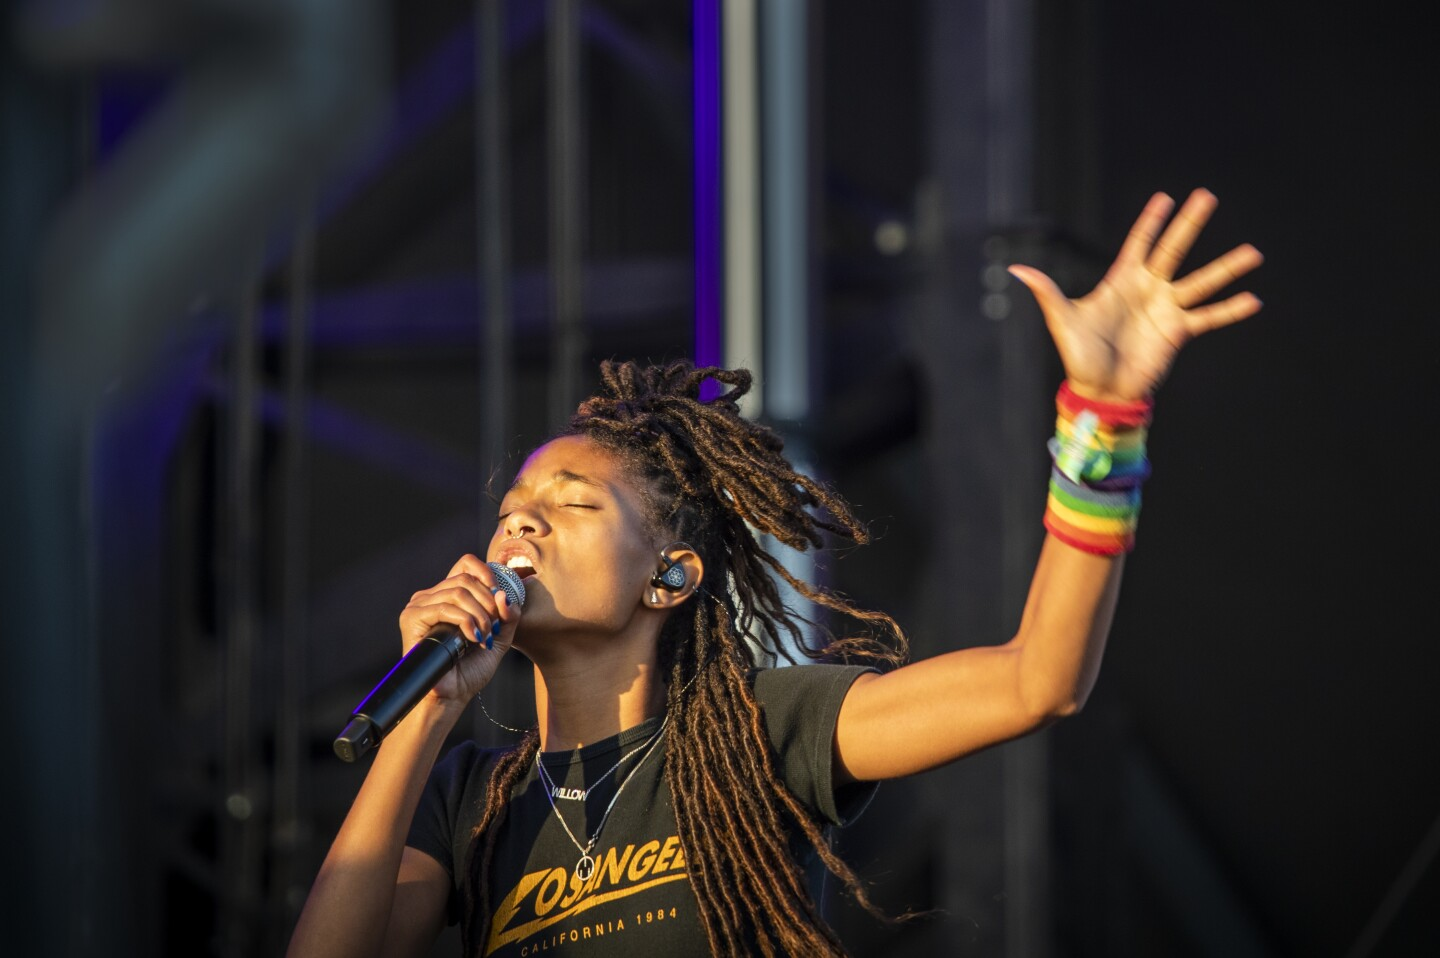 LOS ANGELES, CALIF. -- SUNDAY, NOVEMBER 10, 2019: Willow Smith performs on the Flog stage during Day 2 of the Camp Flog Gnaw Carnival at Dodger Stadium parking lot in Los Angeles, Calif., on Nov. 10, 2019. (Allen J. Schaben / Los Angeles Times)